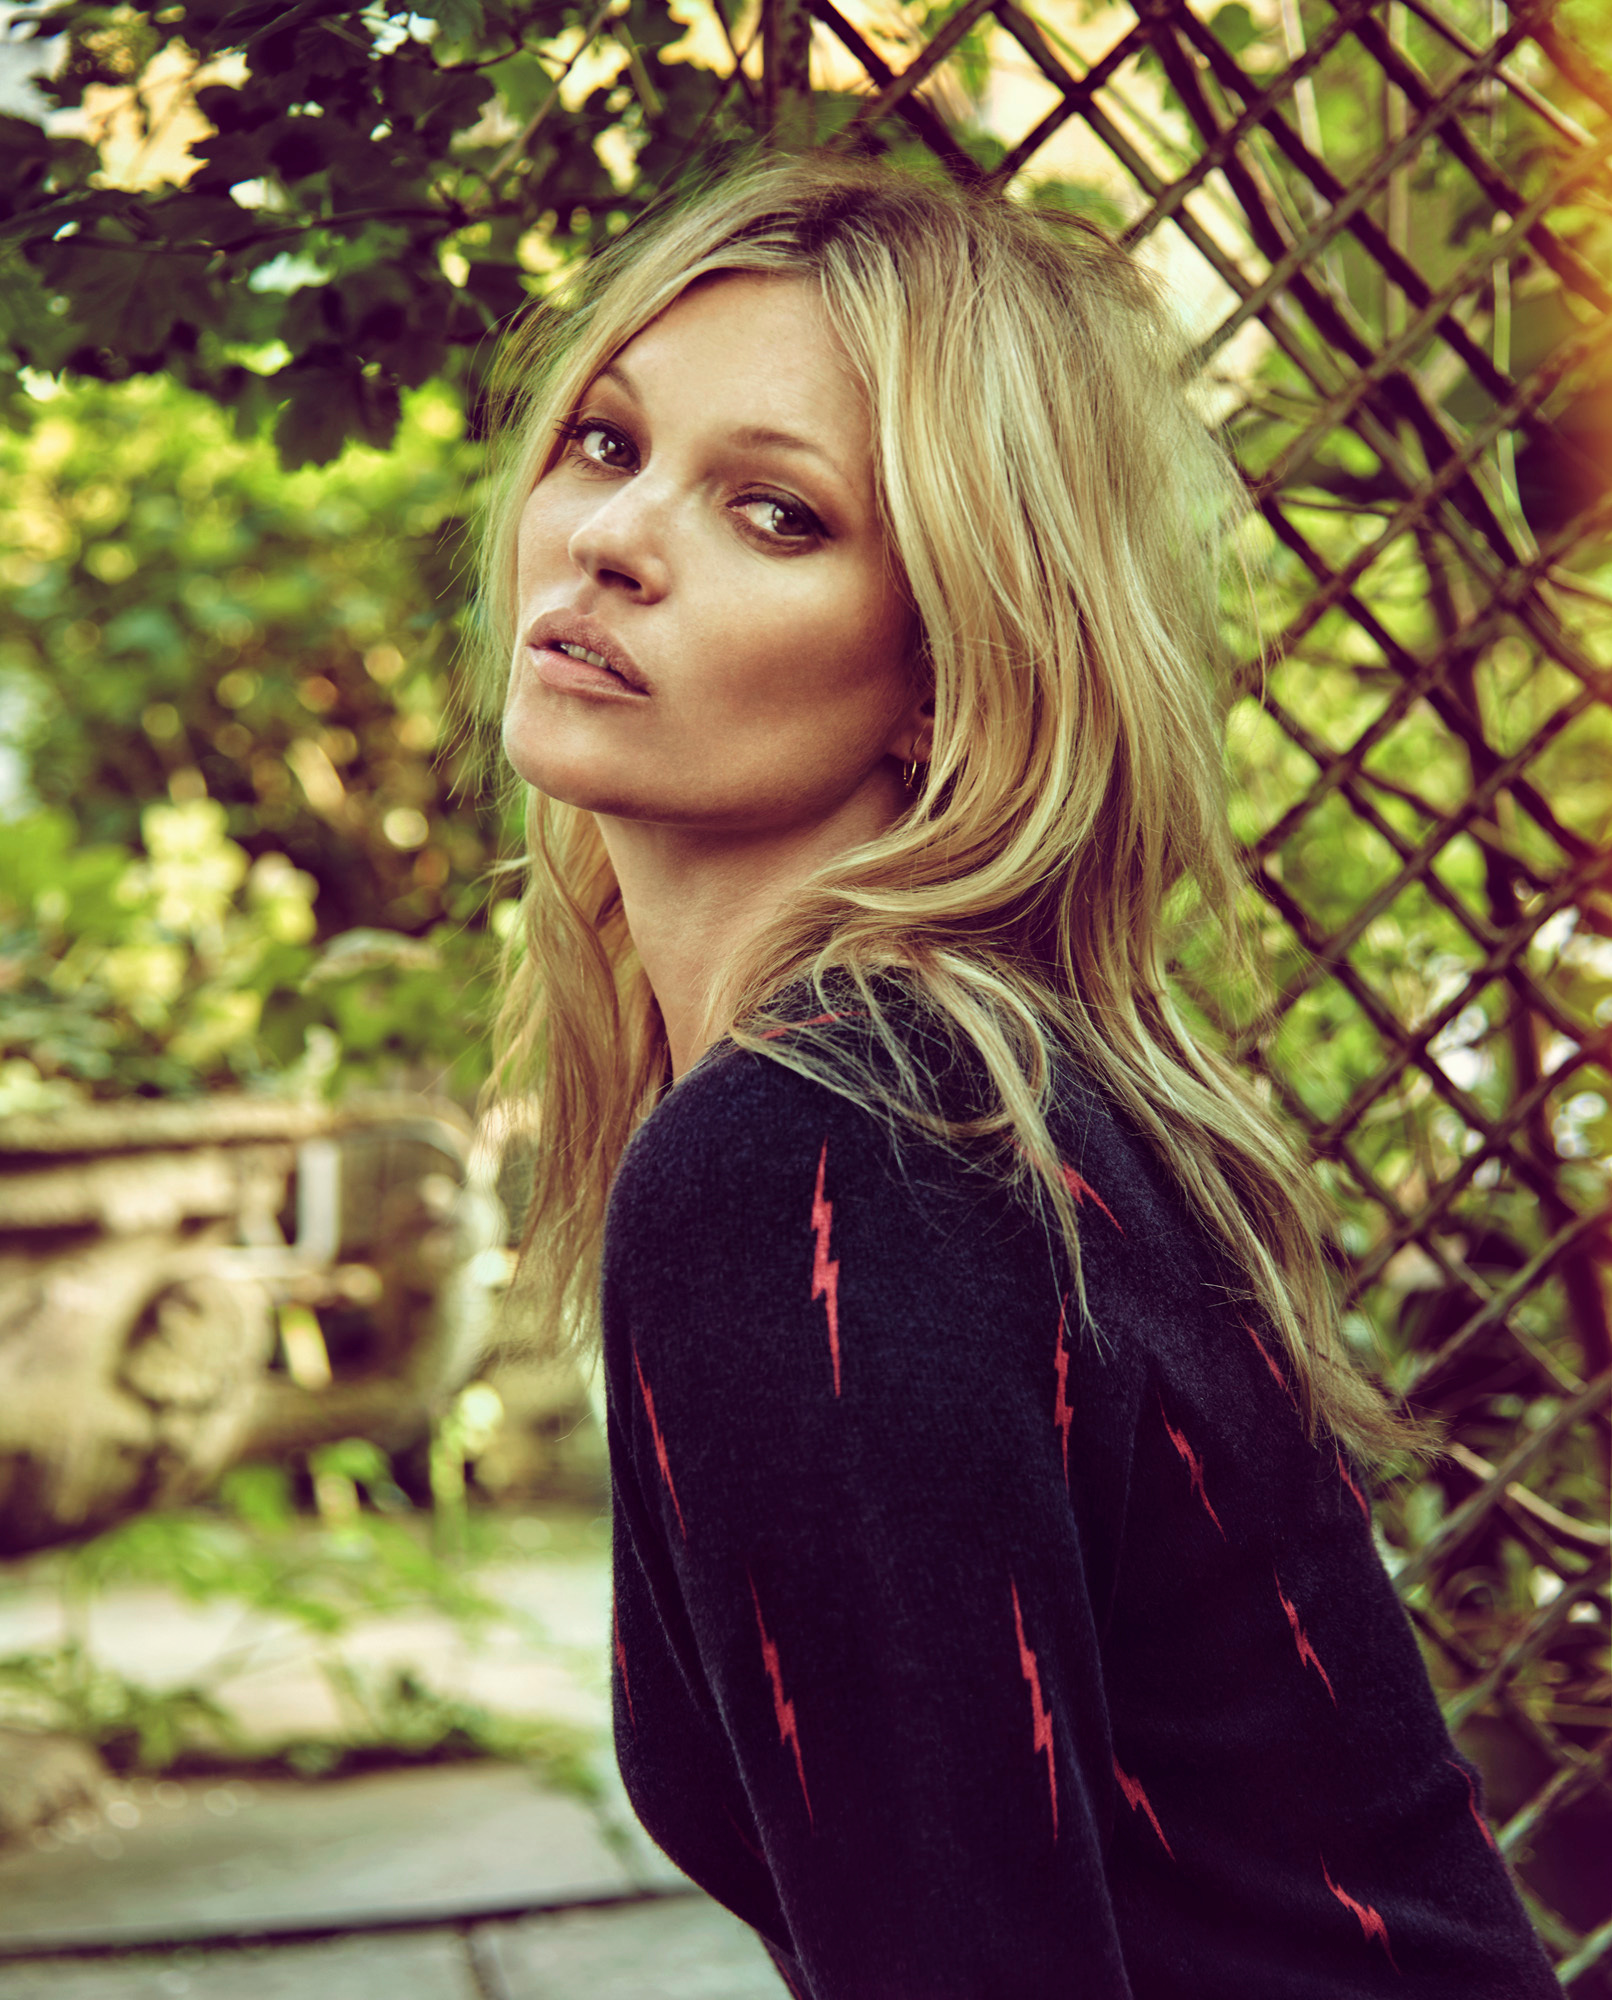 kate-moss-by-chris-colls-for-the-edit-june-2016-6.jpg